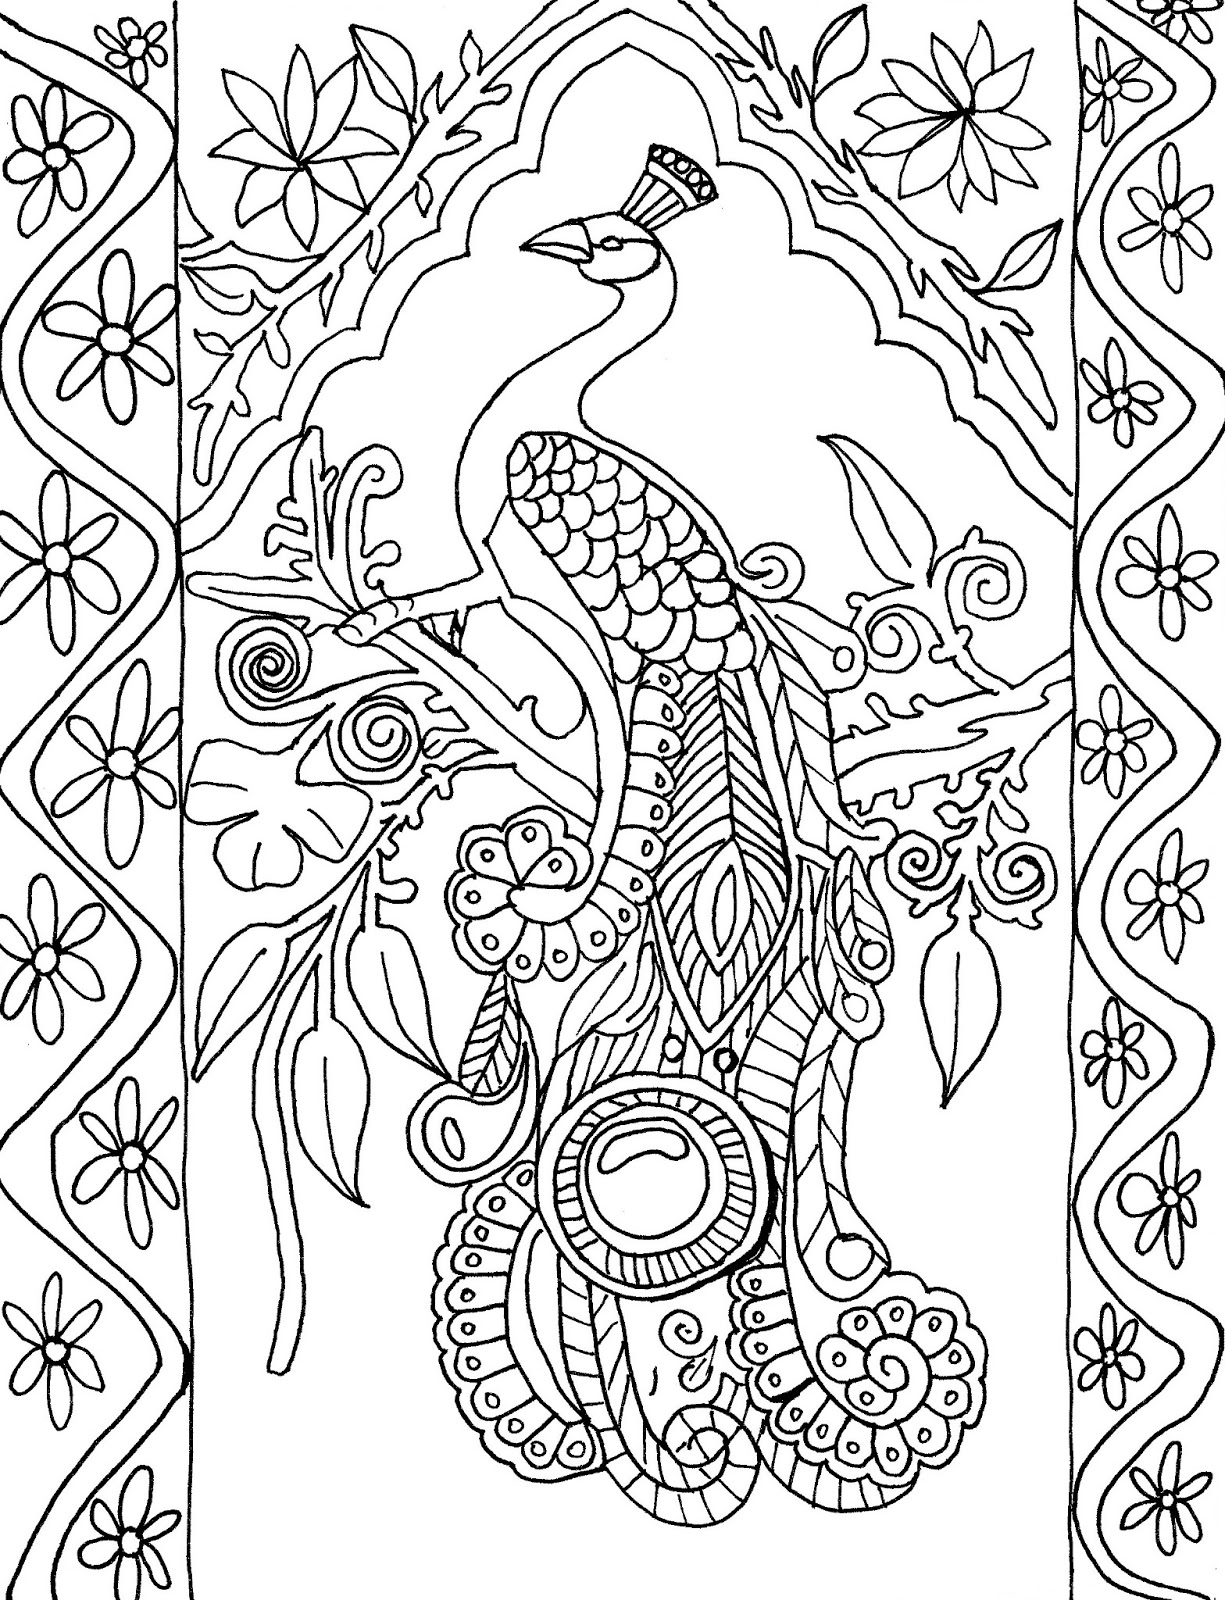 peacock pictures for colouring peacock printable coloring pages pictures for peacock colouring